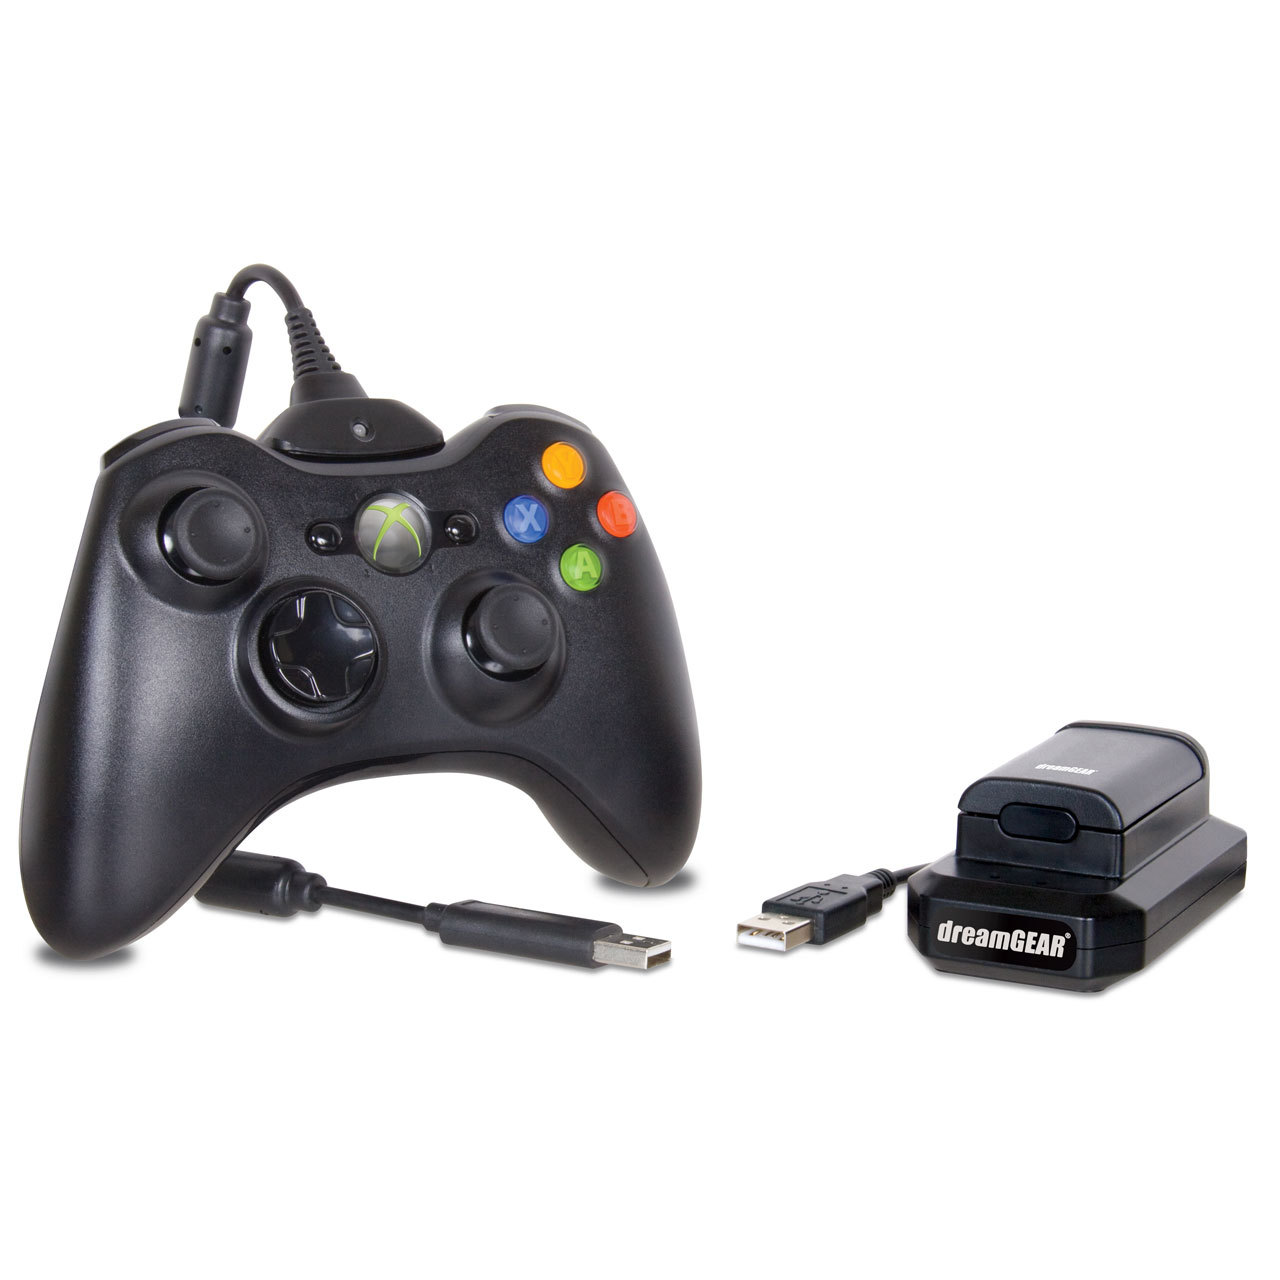 DreamGear Power Kit (3 in 1) Controller NOT includ